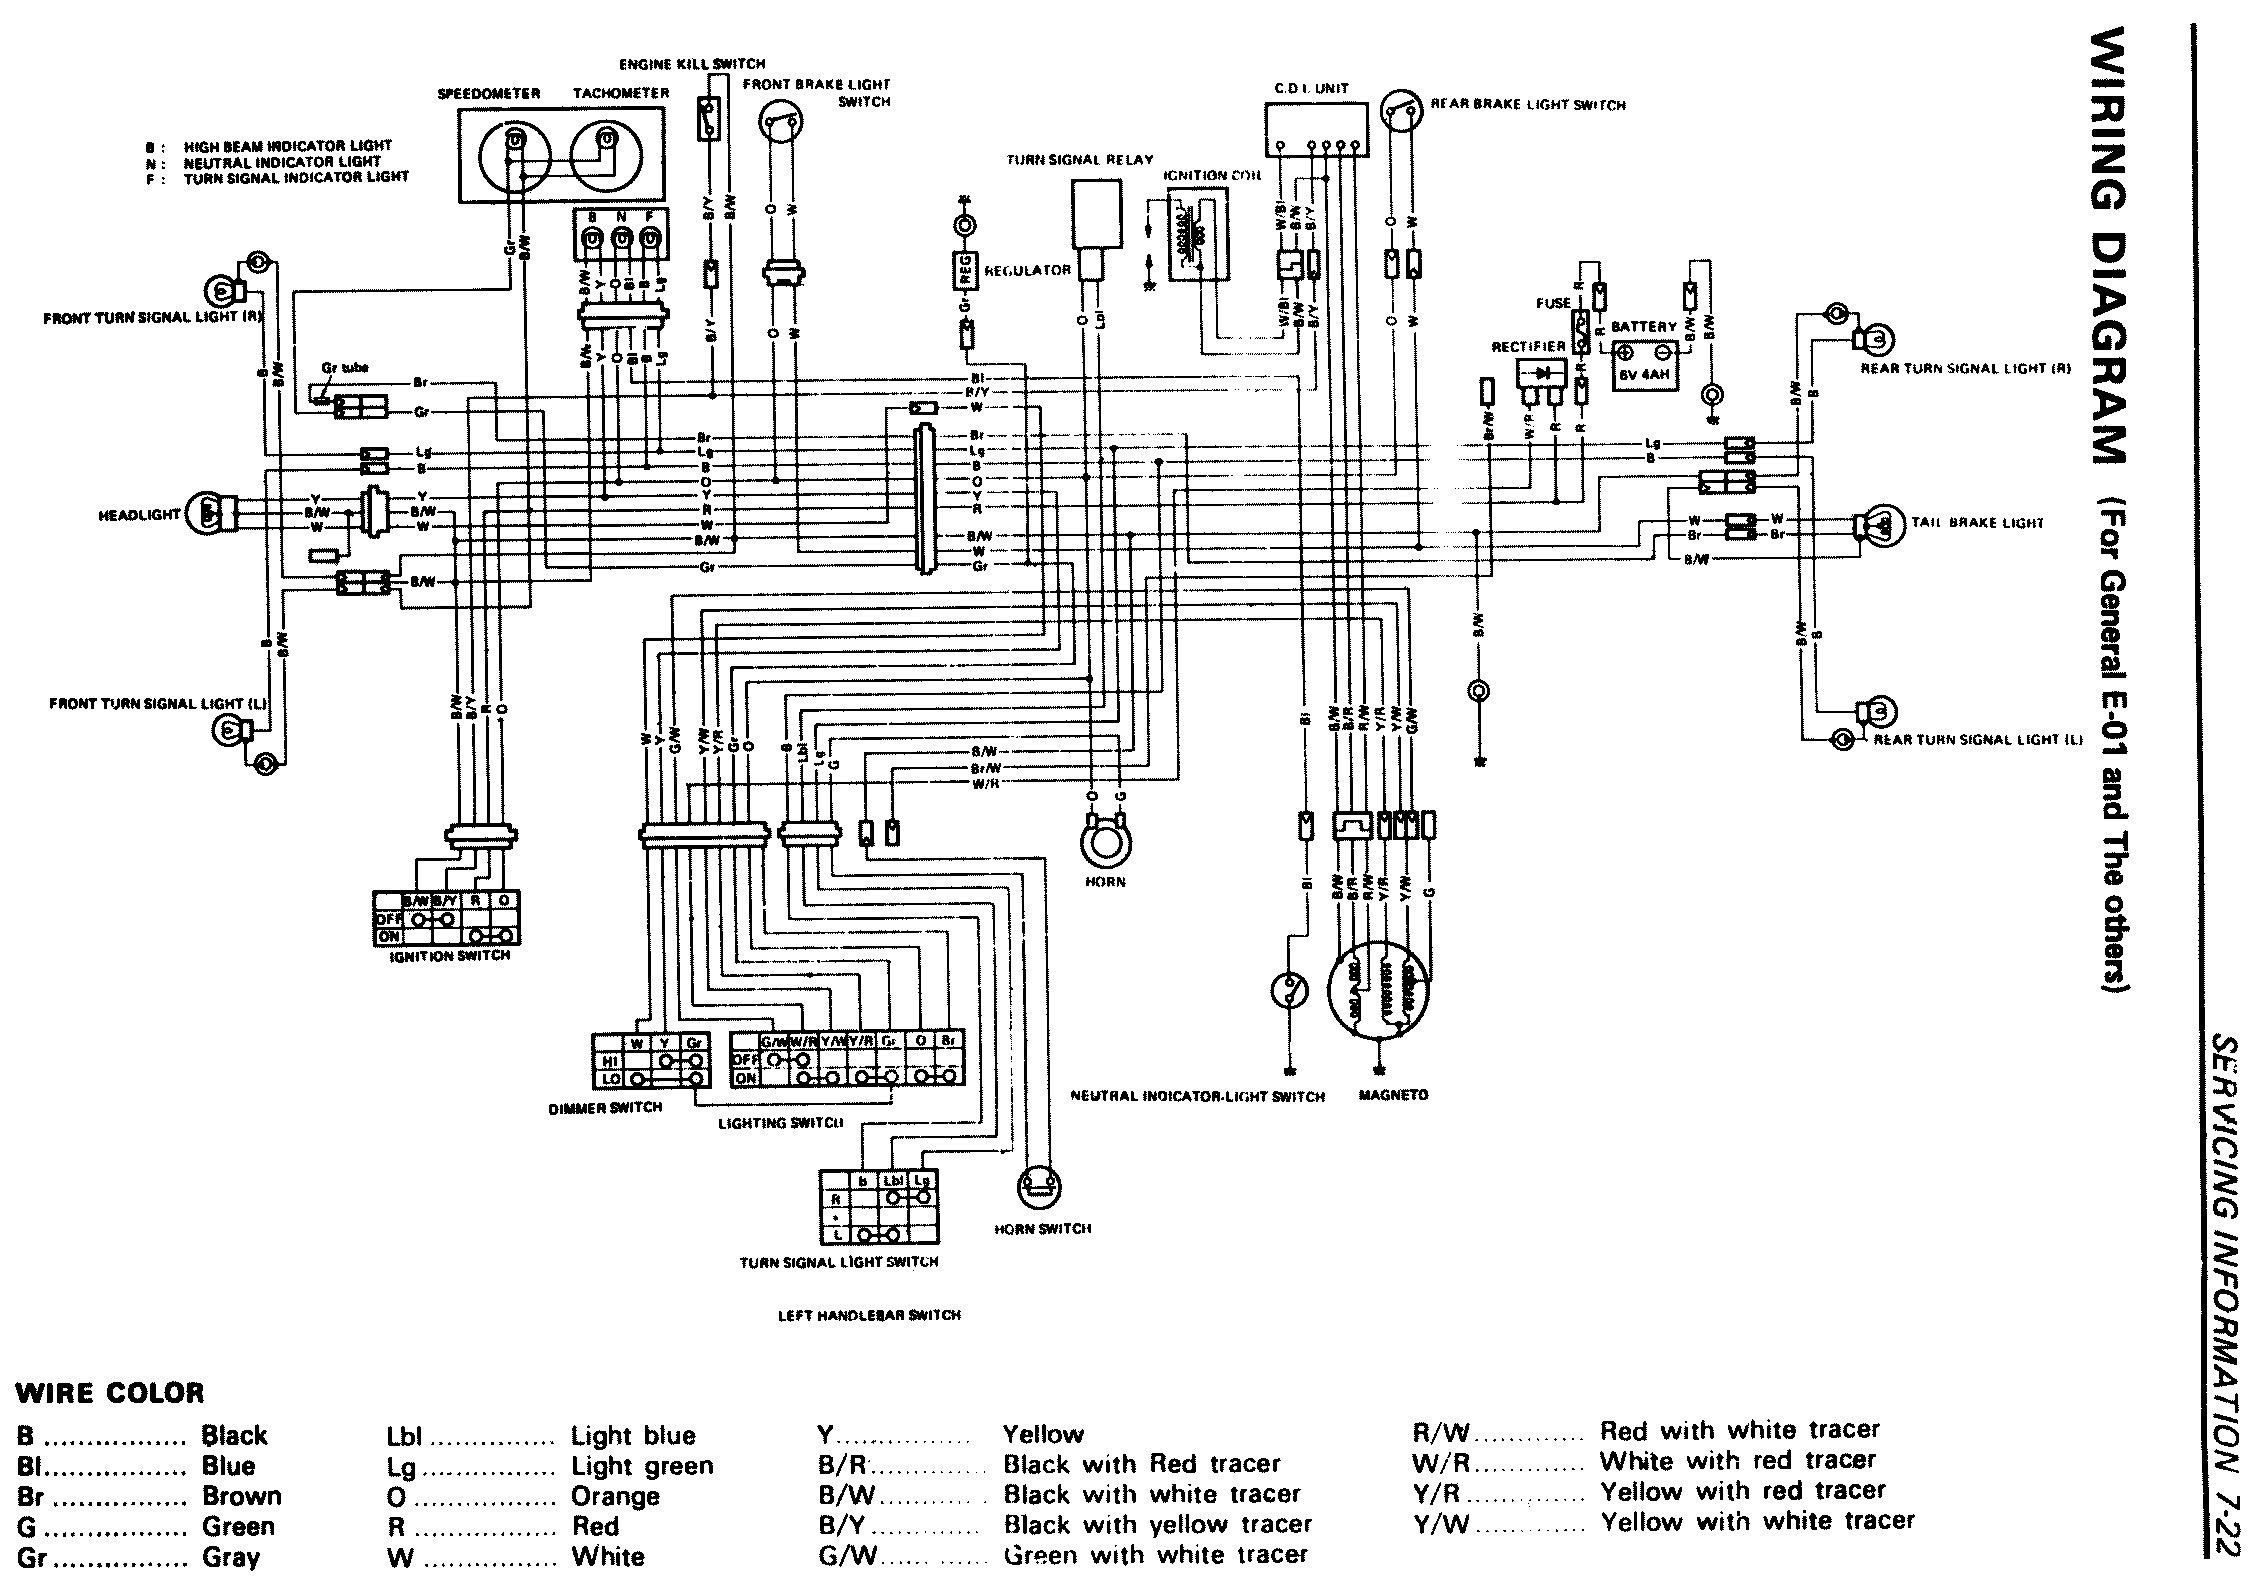 12v Hydraulic Pump Wiring Diagram Collection Wiring